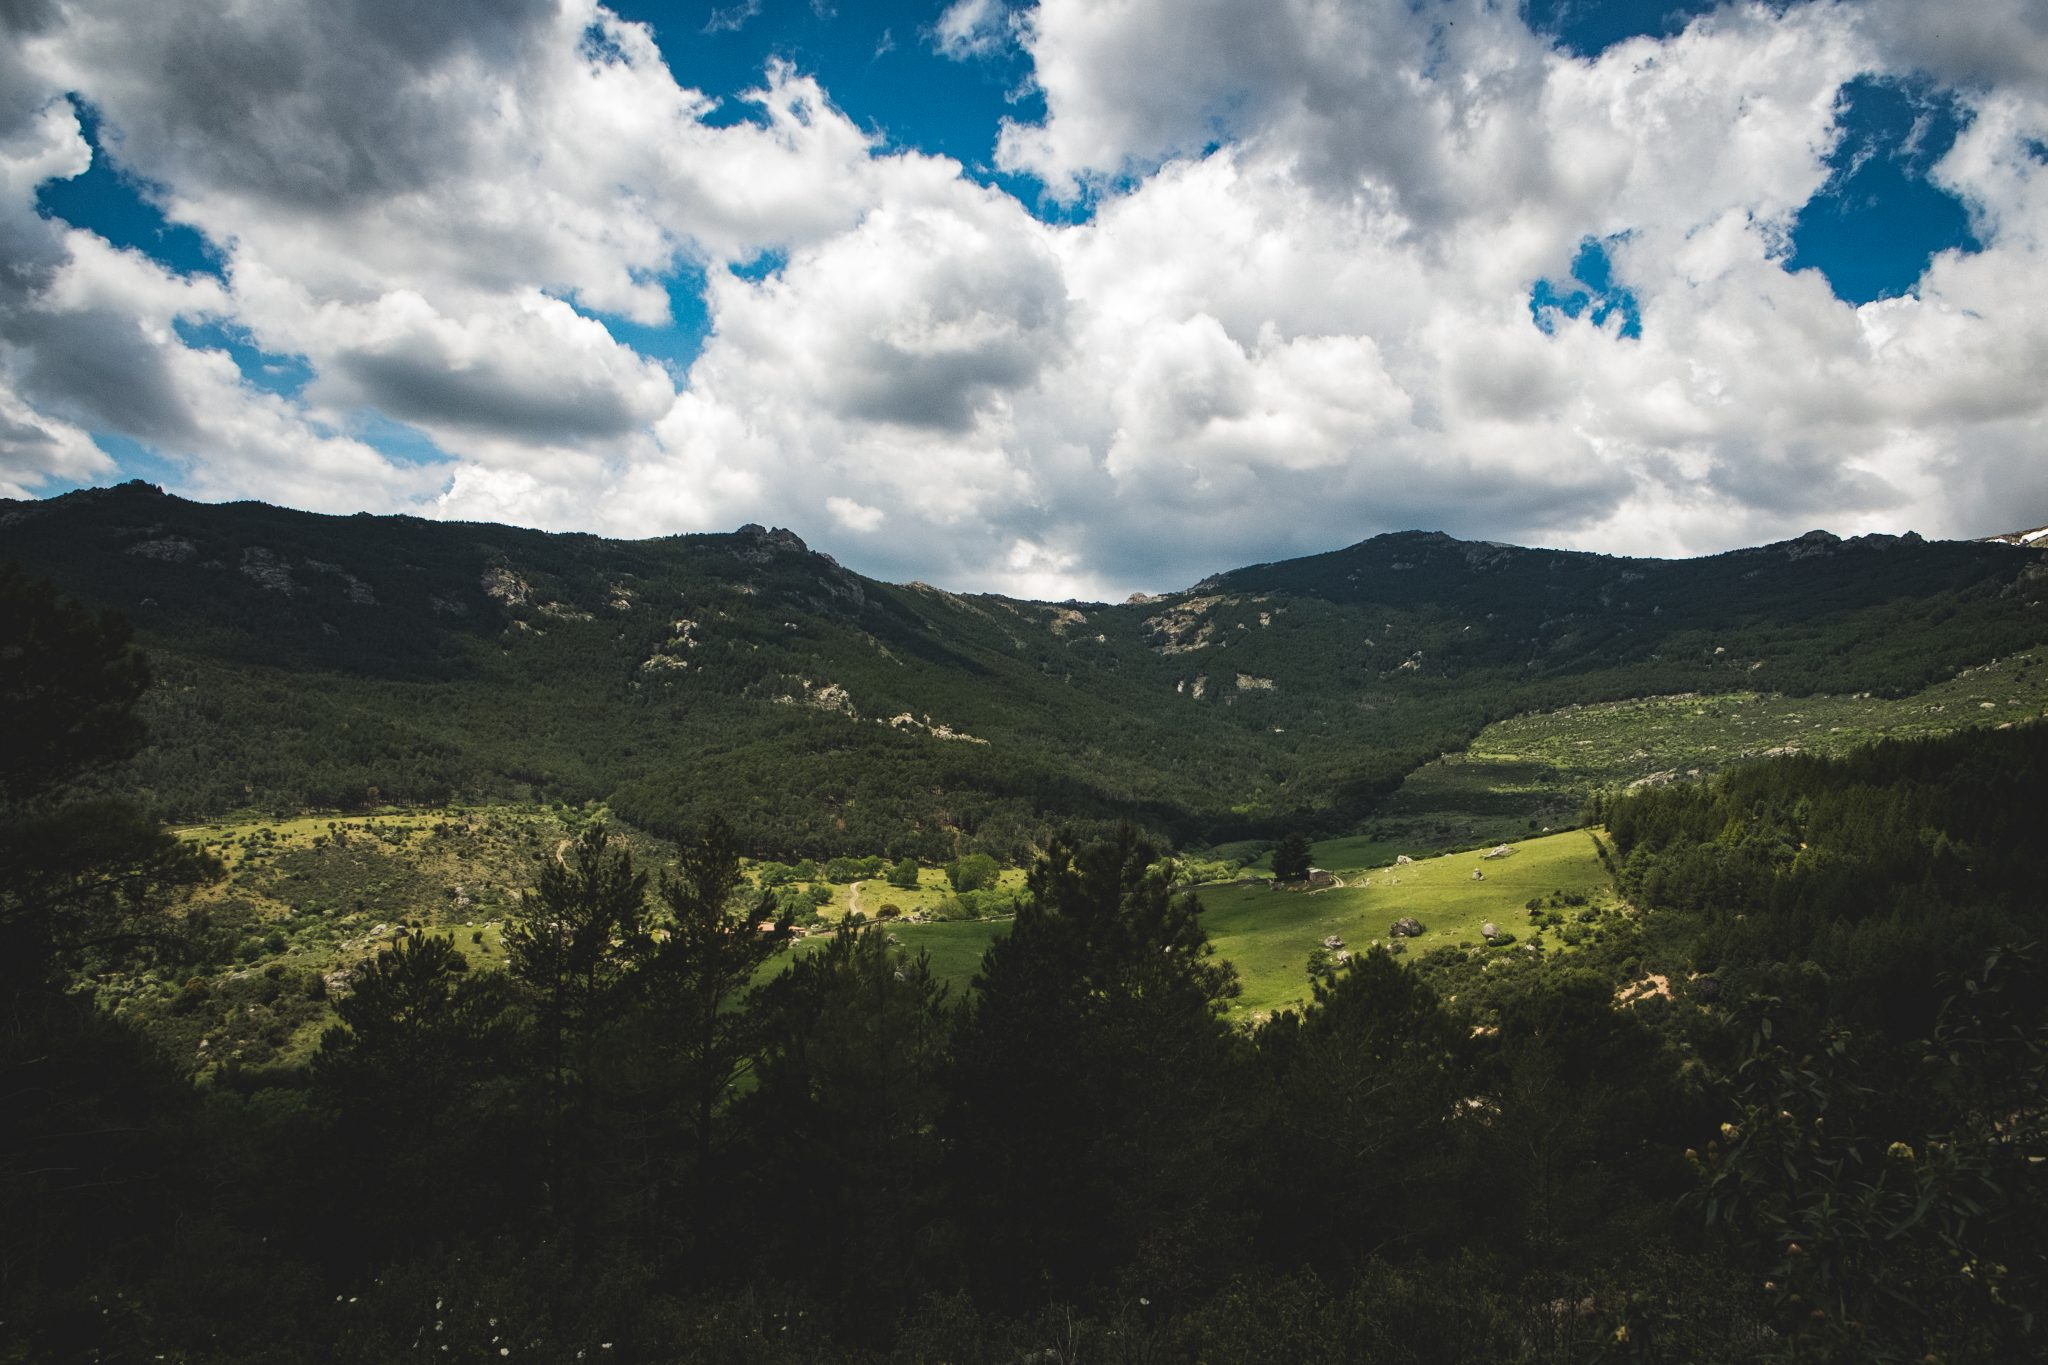 Panoramic view of the mountains in cercedilla by Jo Kassis